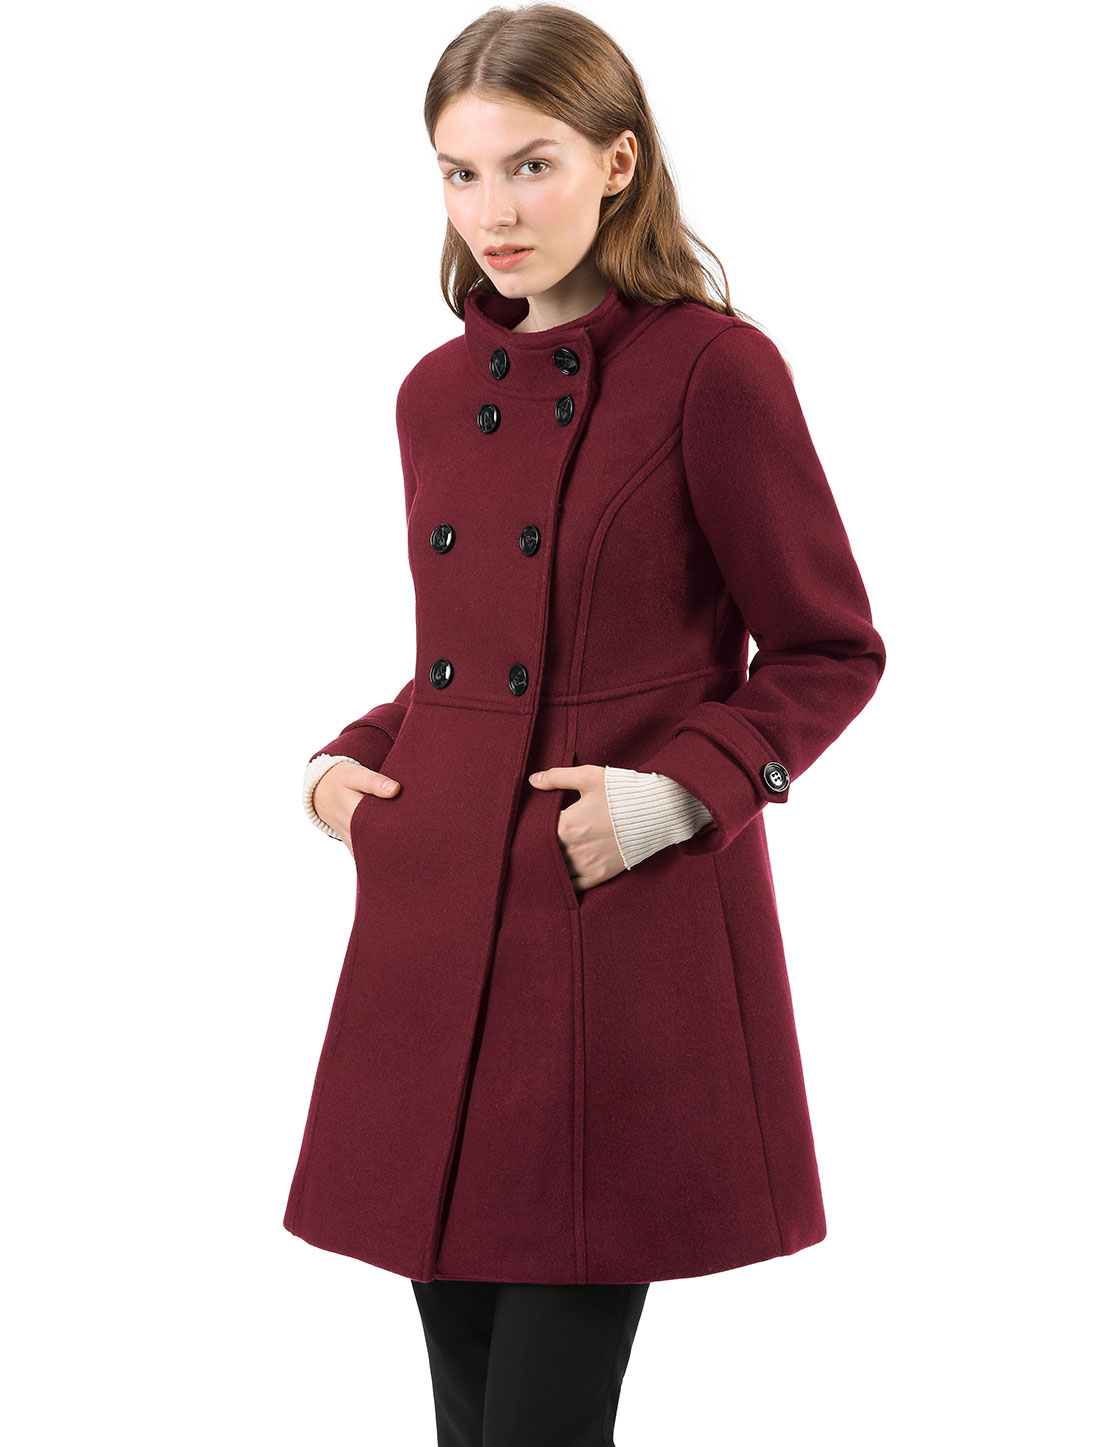 Allegra K Women's Stand Collar Double Breasted A-Line Winter Coat Burgundy L